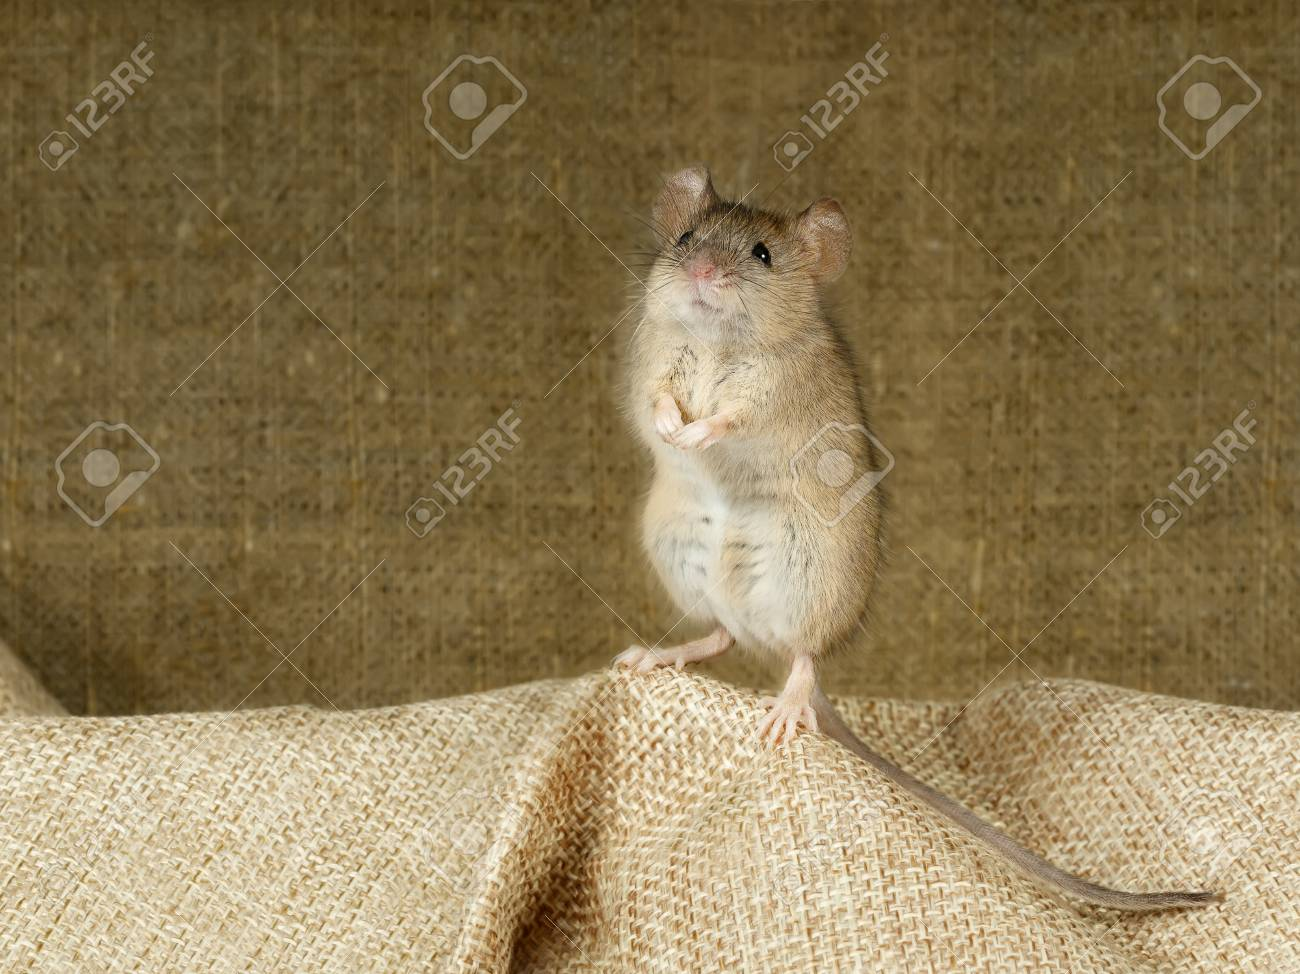 Closeup of the mouse stands on its hind paws on a small linen bag Standard-Bild - 91462310